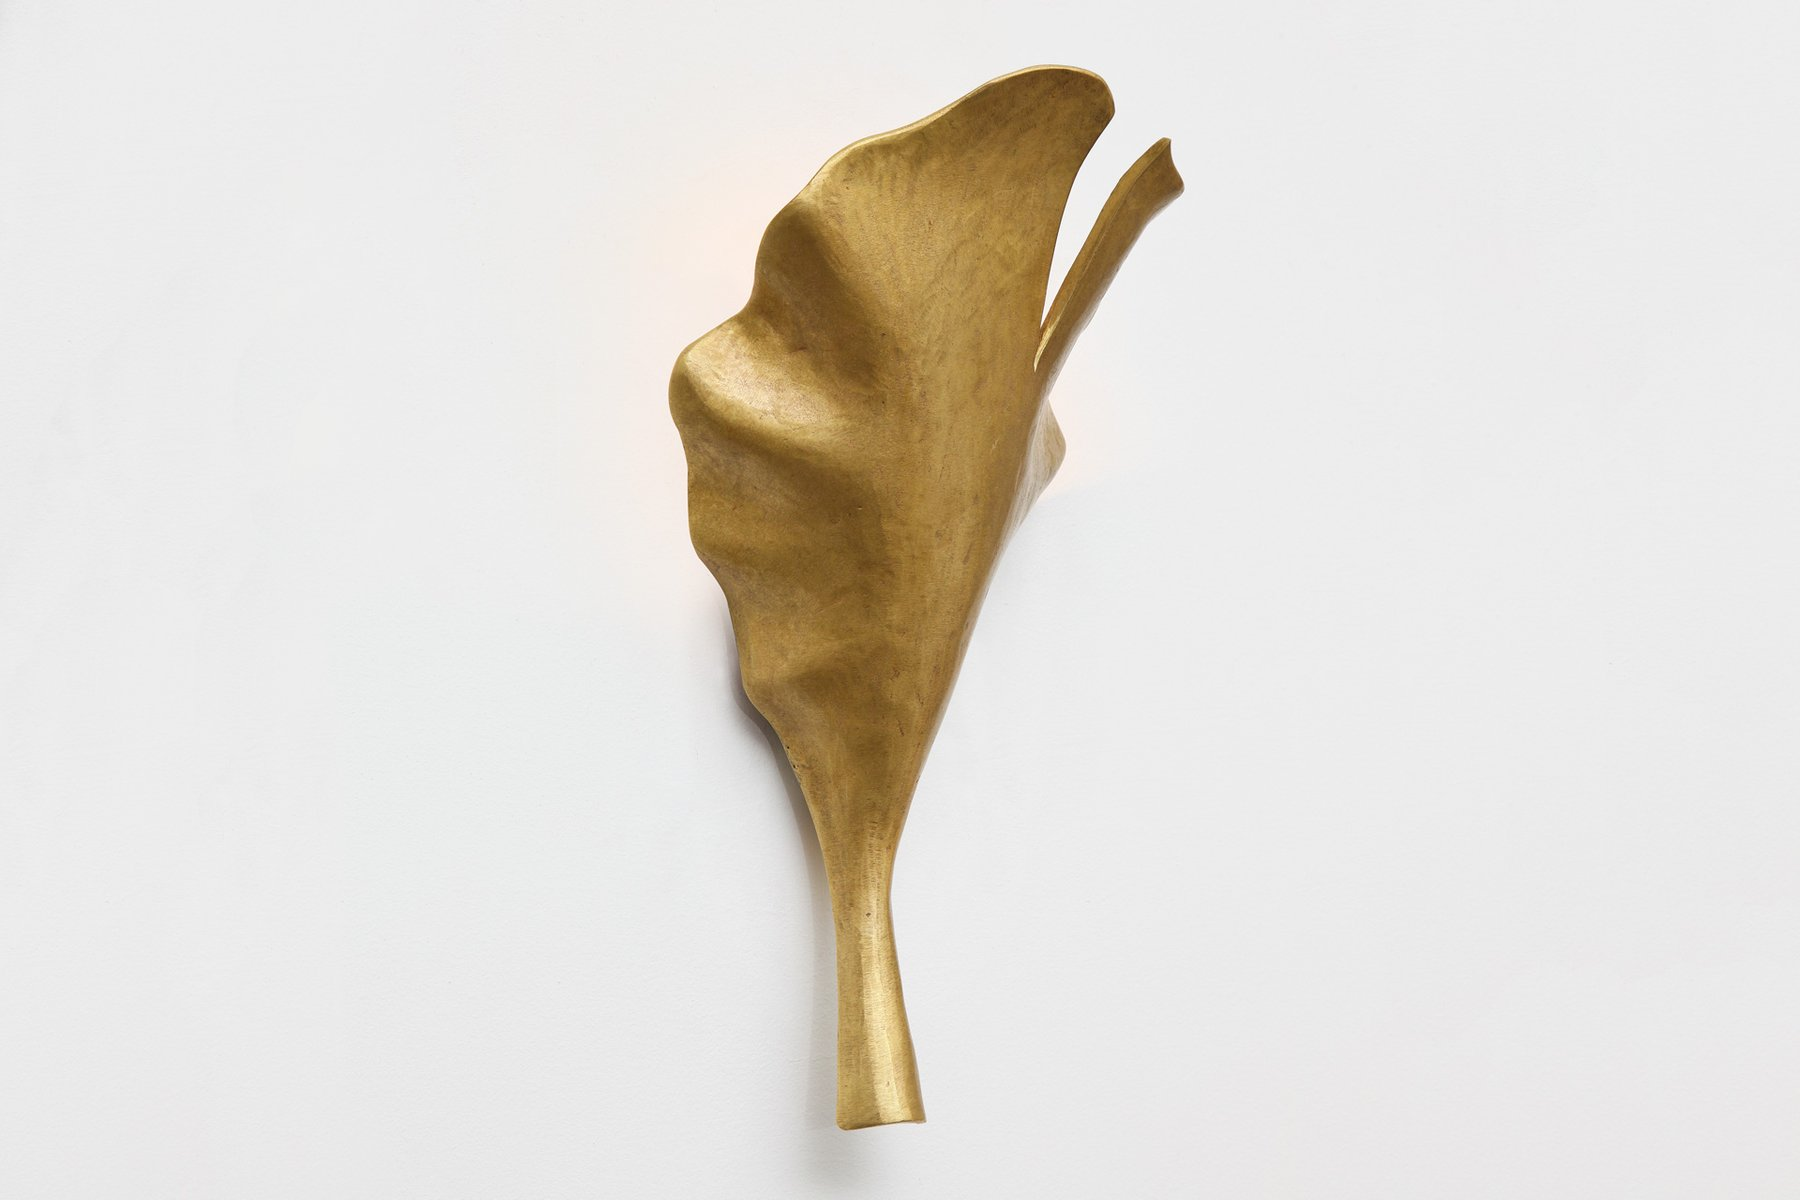 New Leaf Sconce by Marc Bankowsky